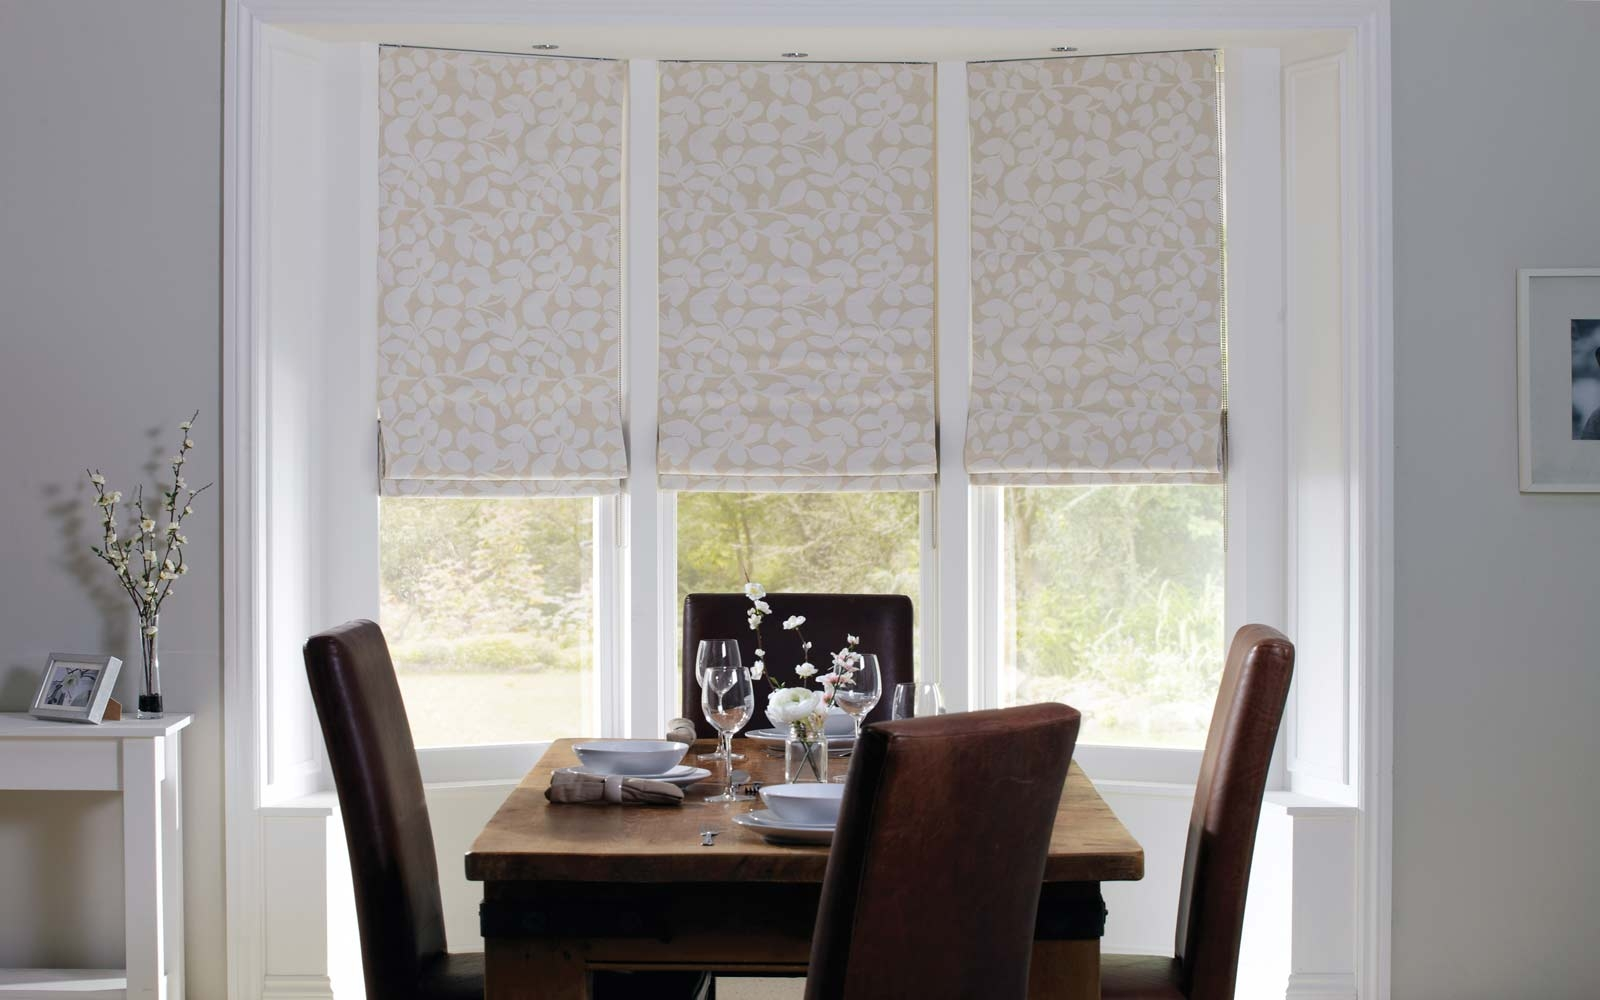 Roman Blinds Surrey Blinds Shutters Within Blackout Roman Blind (View 5 of 15)